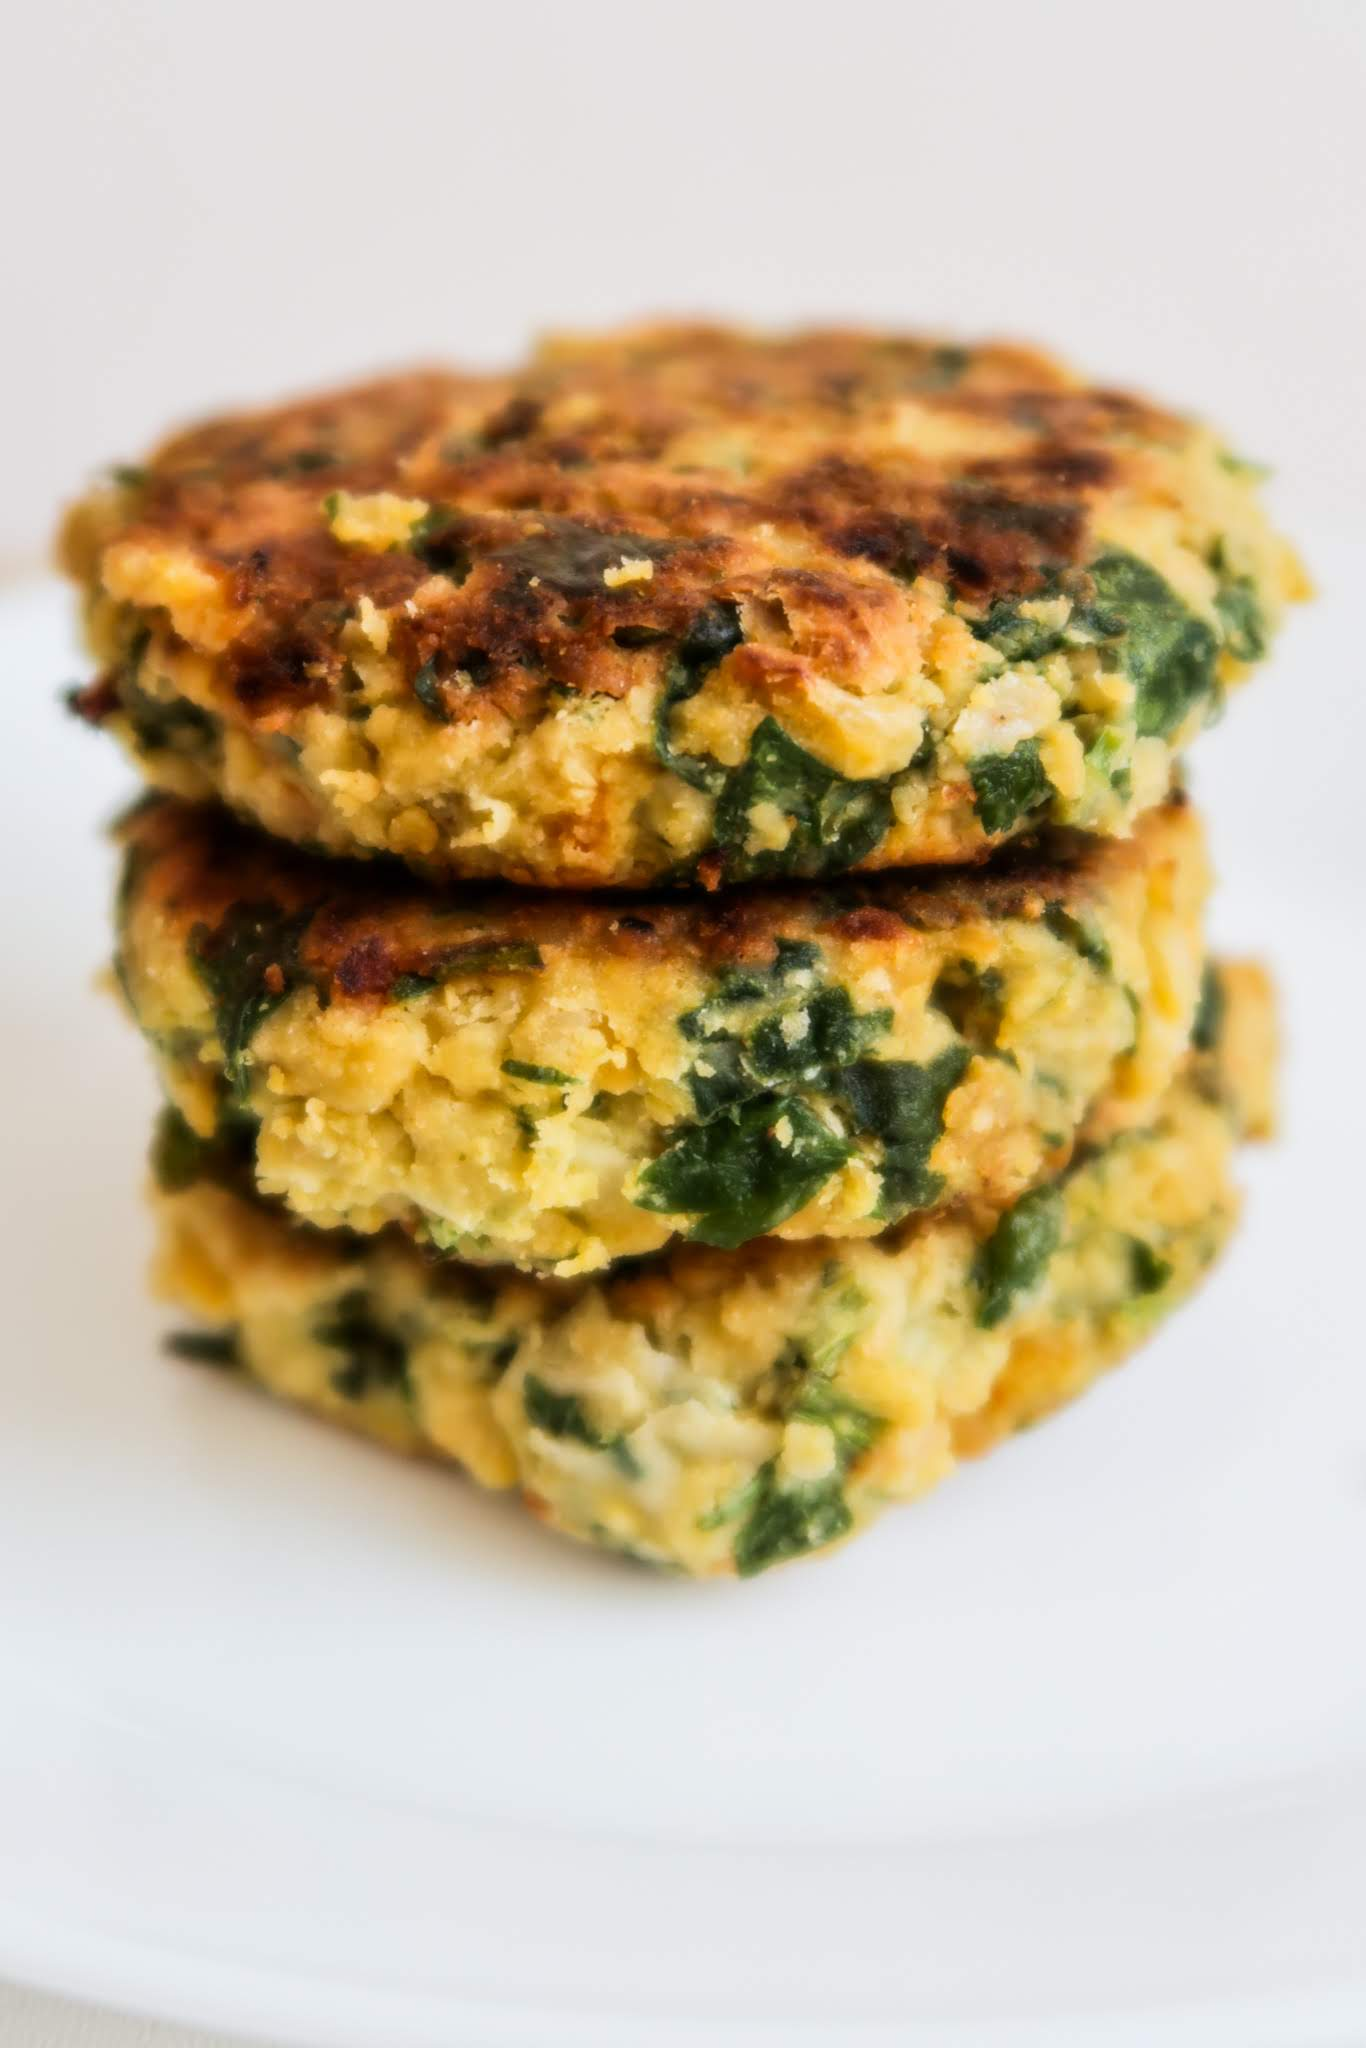 Easy spinach chickpea cakes recipe! This is a healthy chickpea recipe that is delicious and perfect for lunch, dinner or a snack! Serve with salad and hummus for a healthy vegetarian meal!